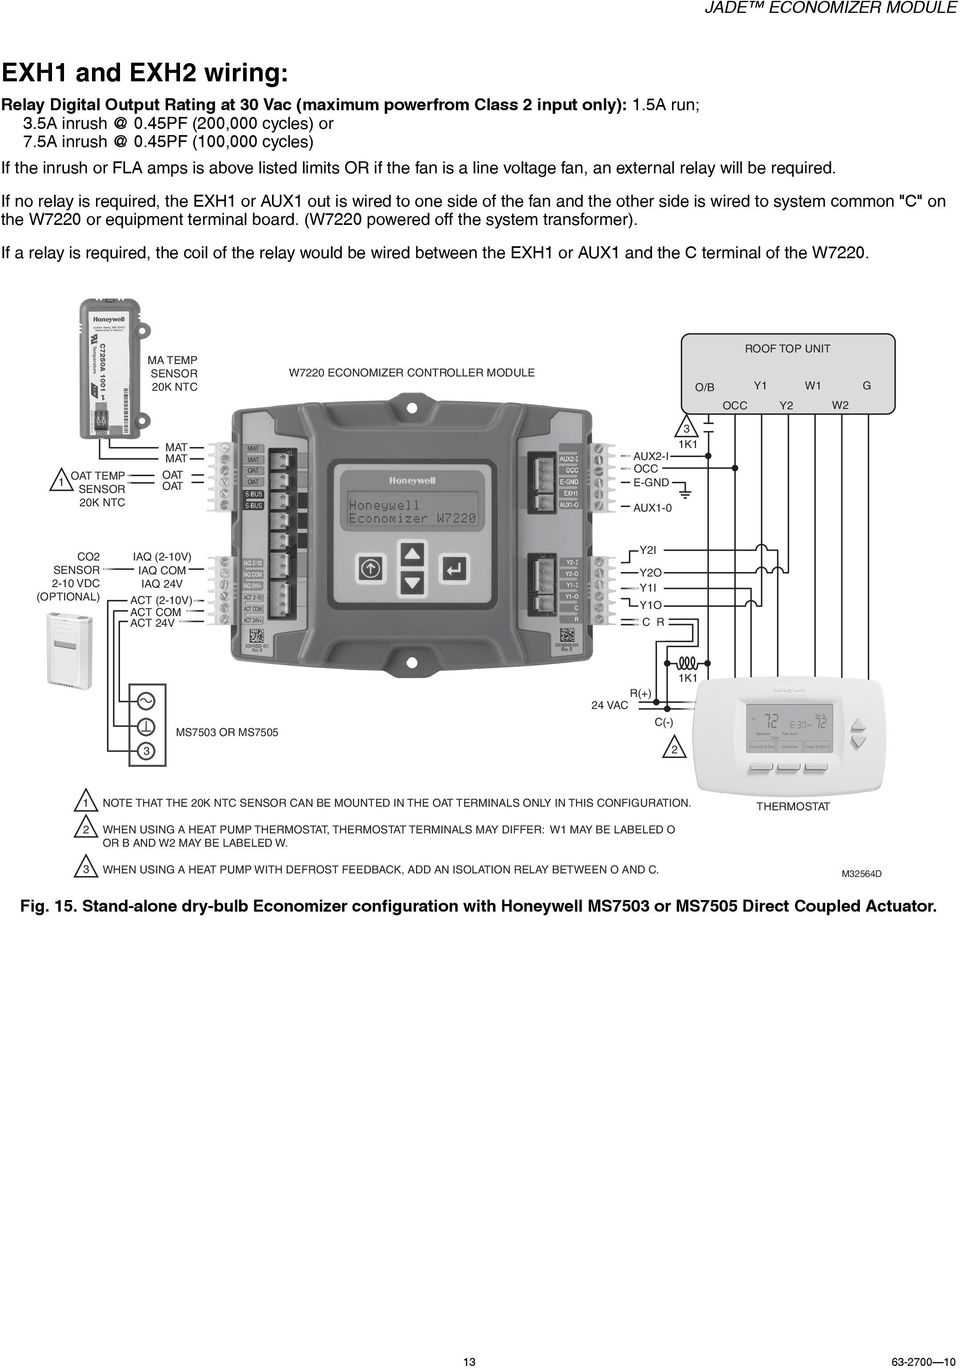 hight resolution of if no relay is required the exh or aux out is wired to one side